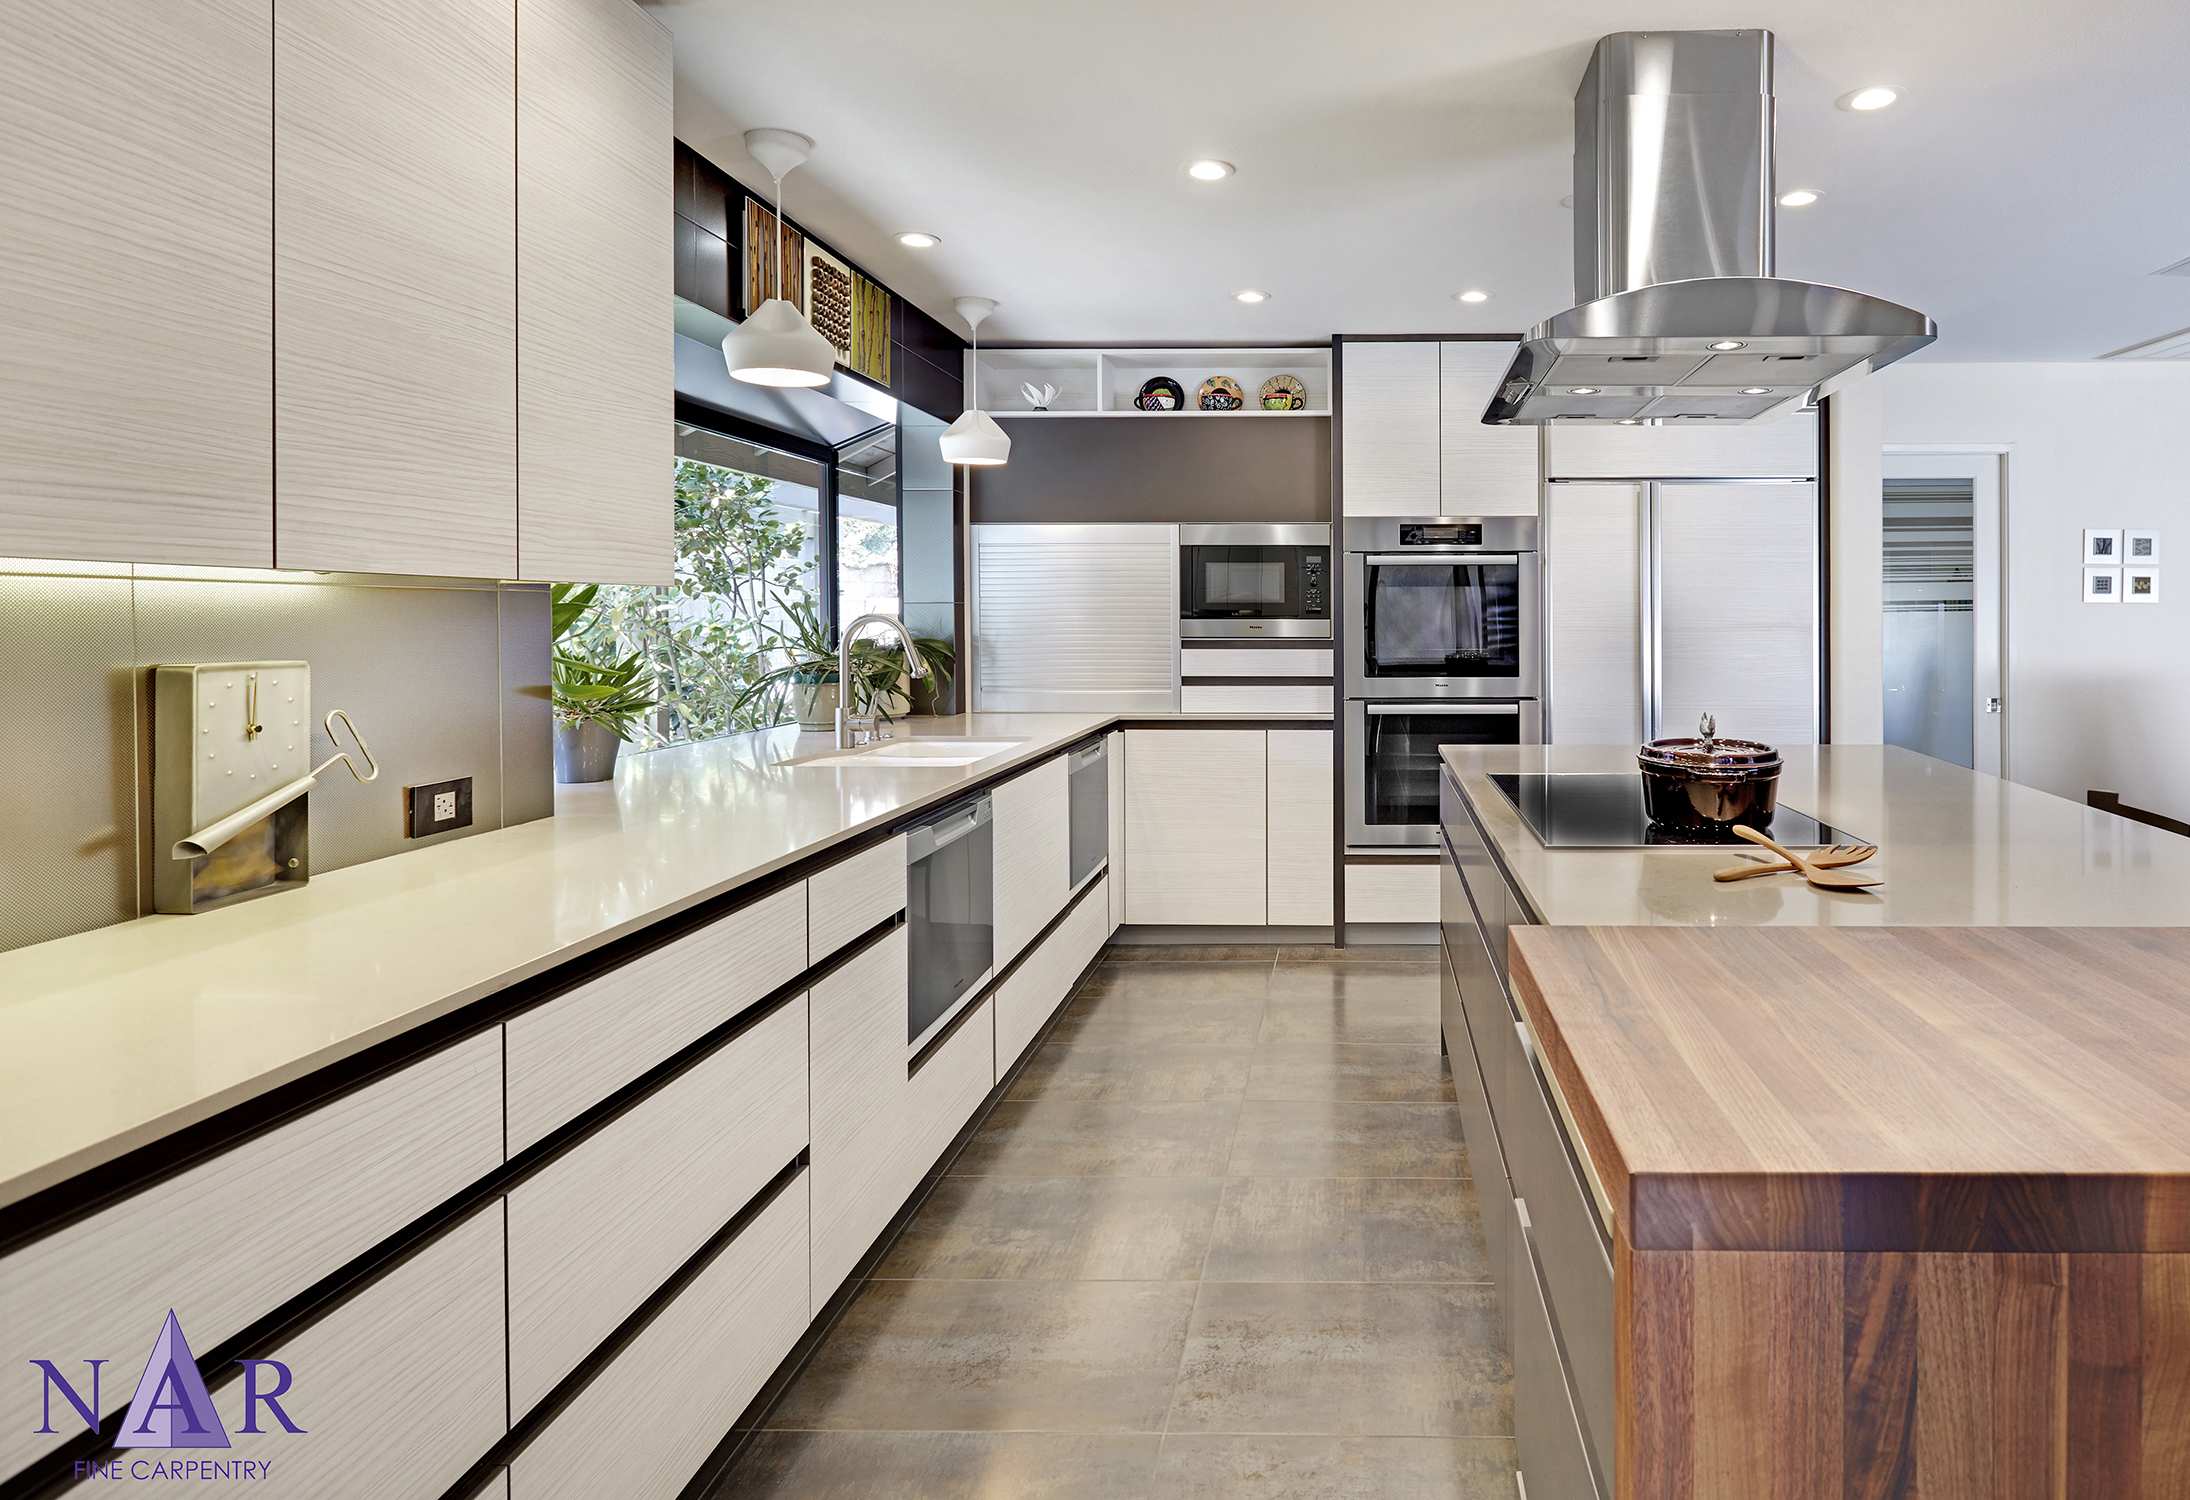 Gold River Light Contemporary. Nar Fine Carpentry. Sacramento. El Dorado Hills